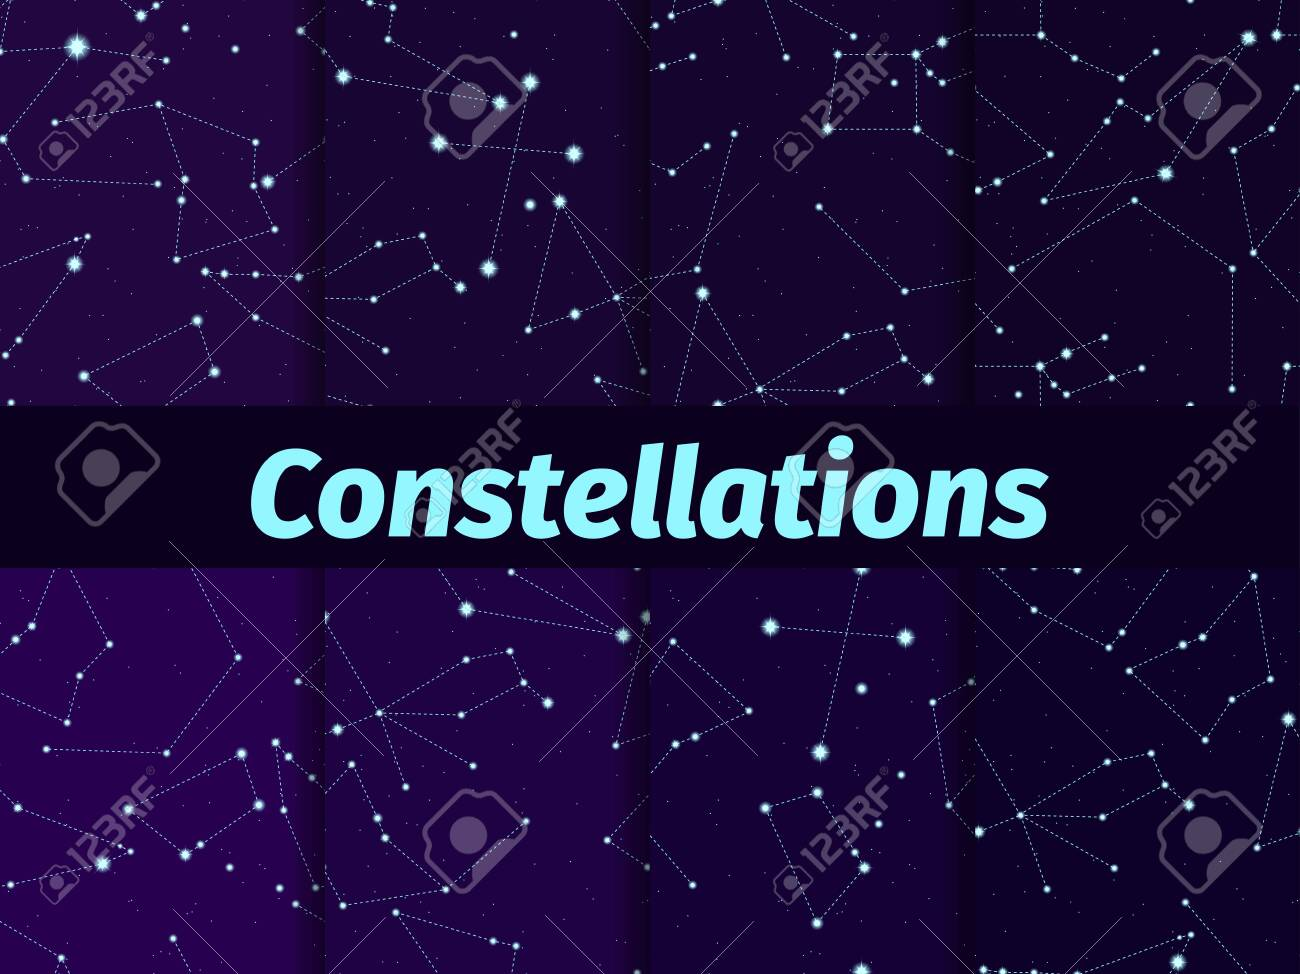 Constellations seamless pattern set. Starry night sky map. Cluster of stars and galaxies. Deep space. Vector illustration - 152218542